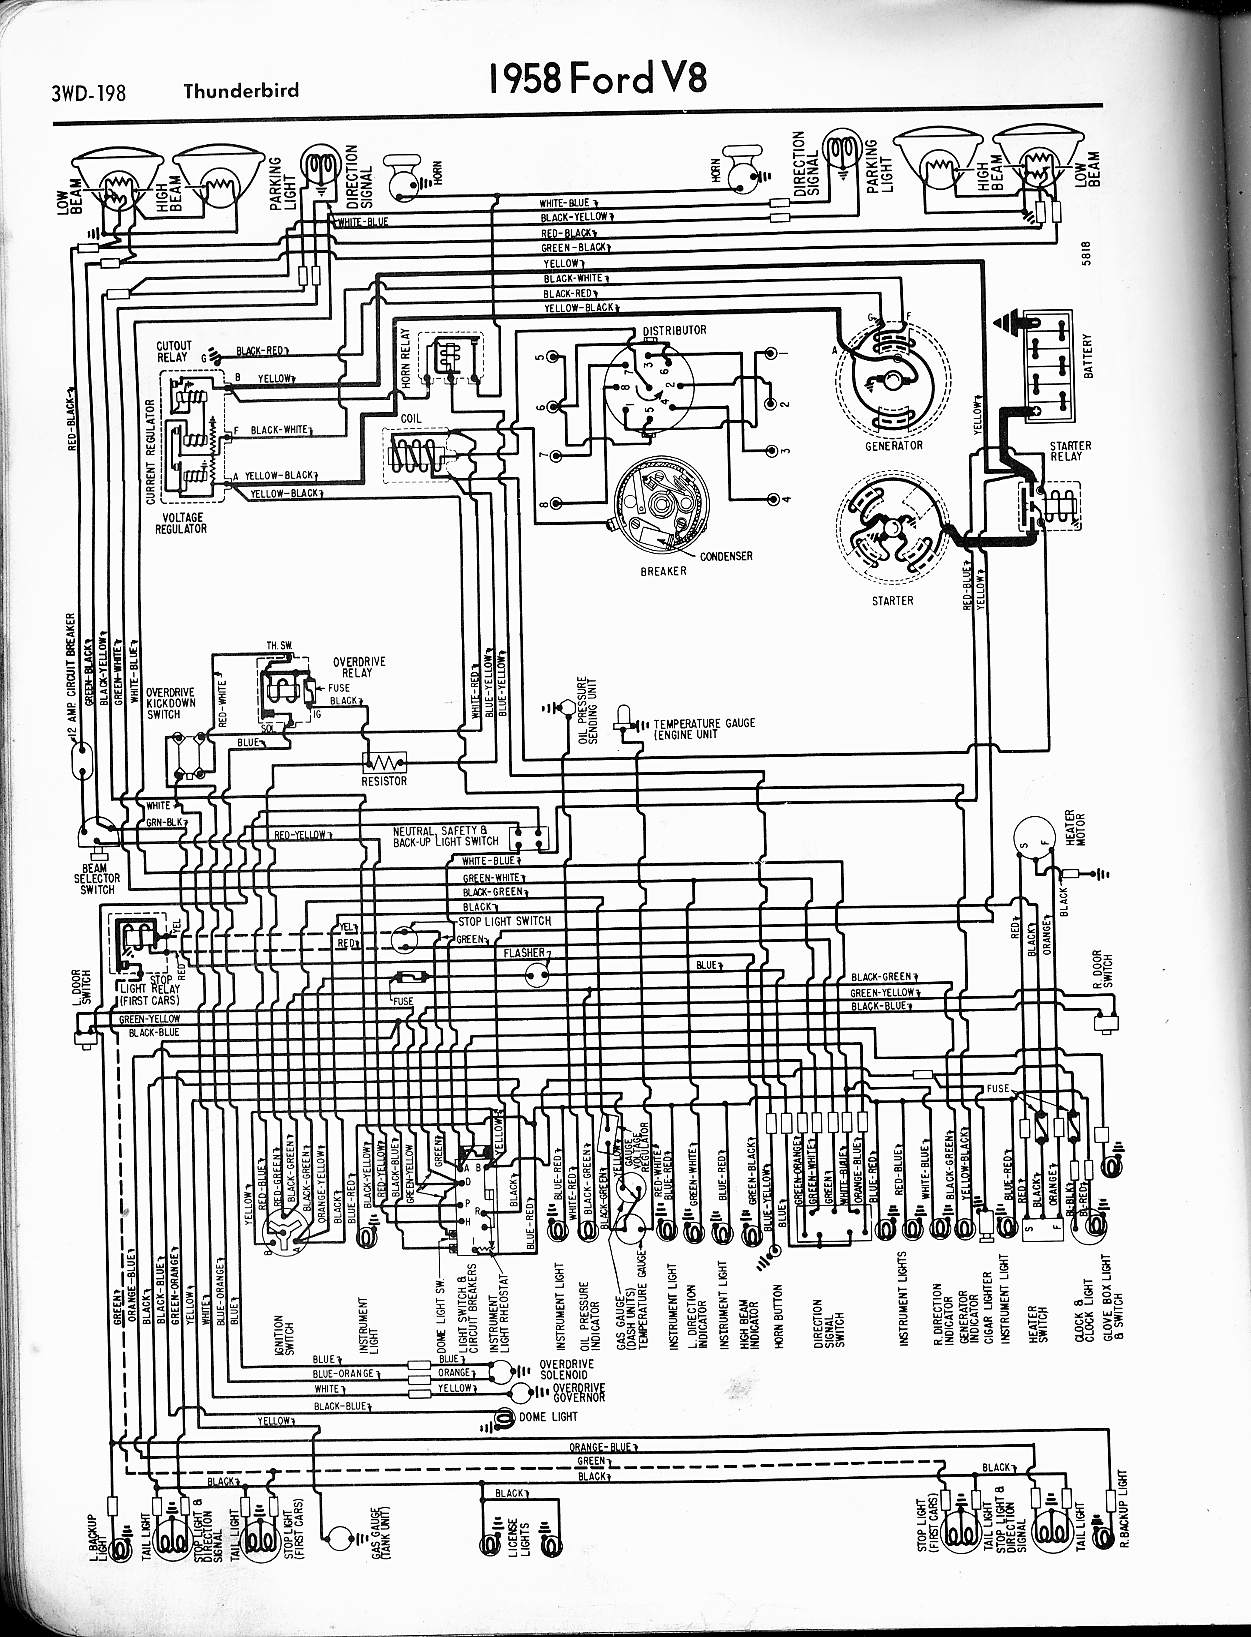 Mwire on 1964 ford ranchero wiring diagram